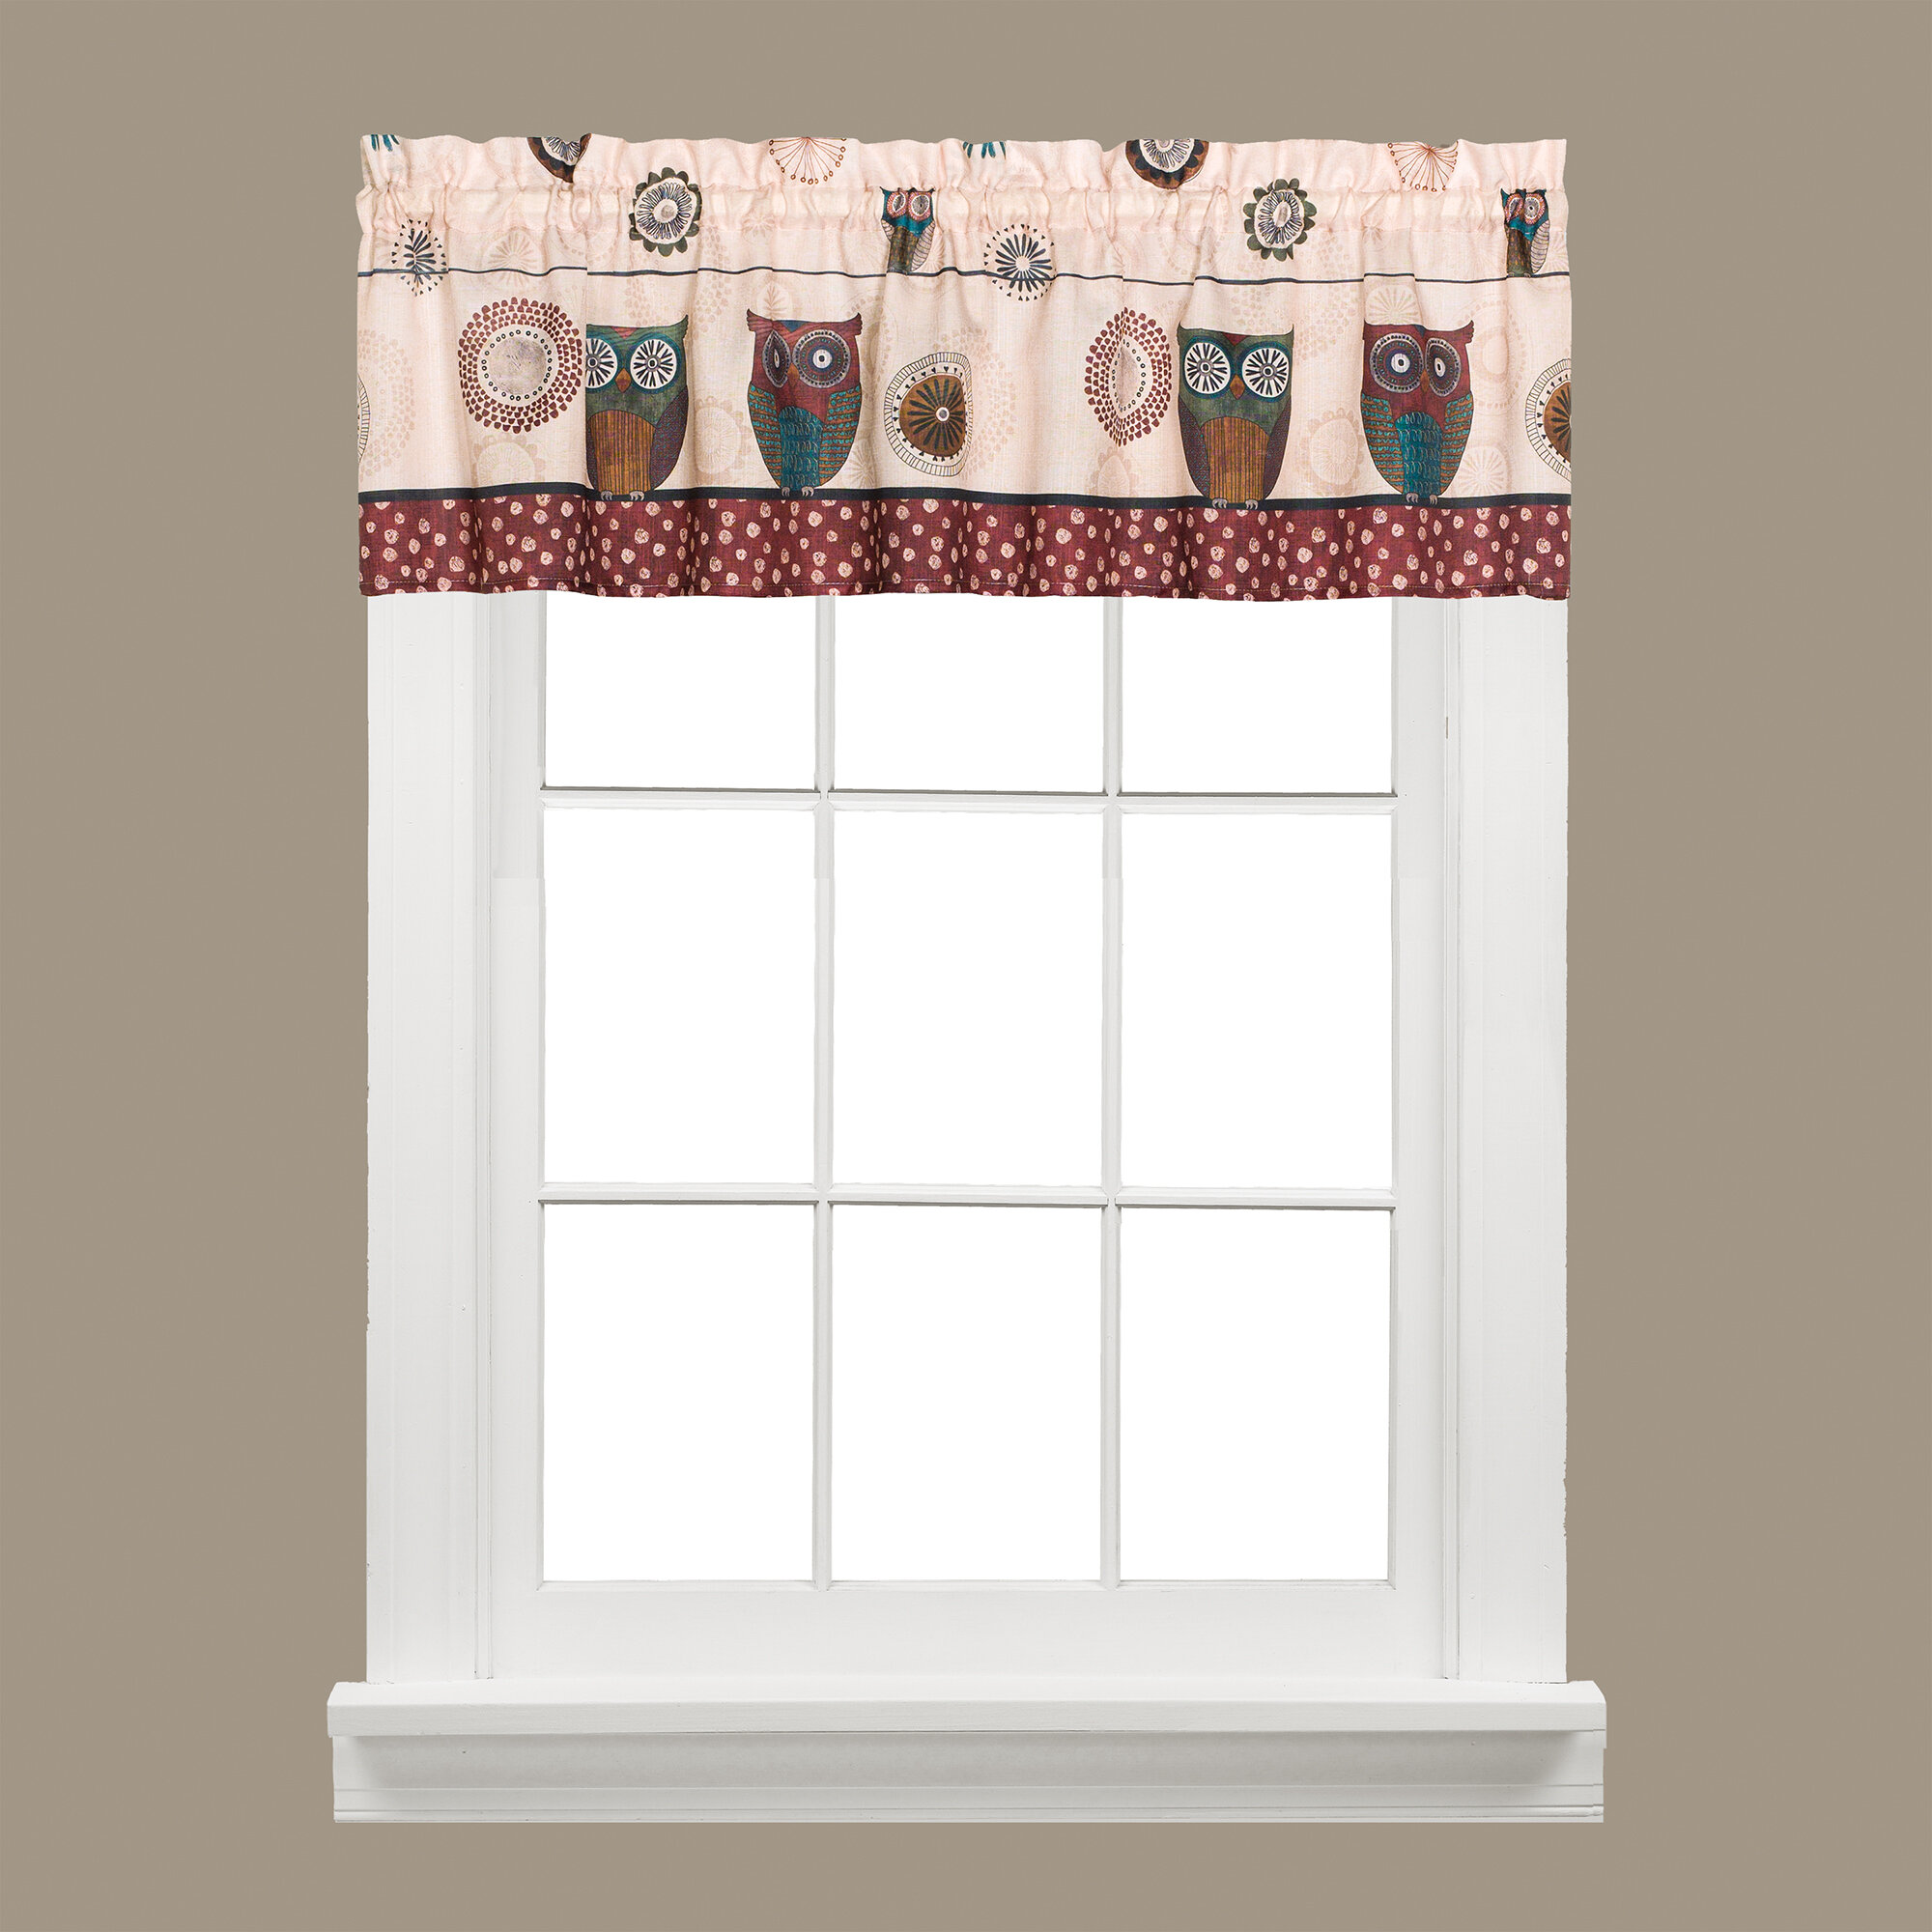 formal and nj treatments room jabots in pole valances valance swags curtains boutique by window living panels